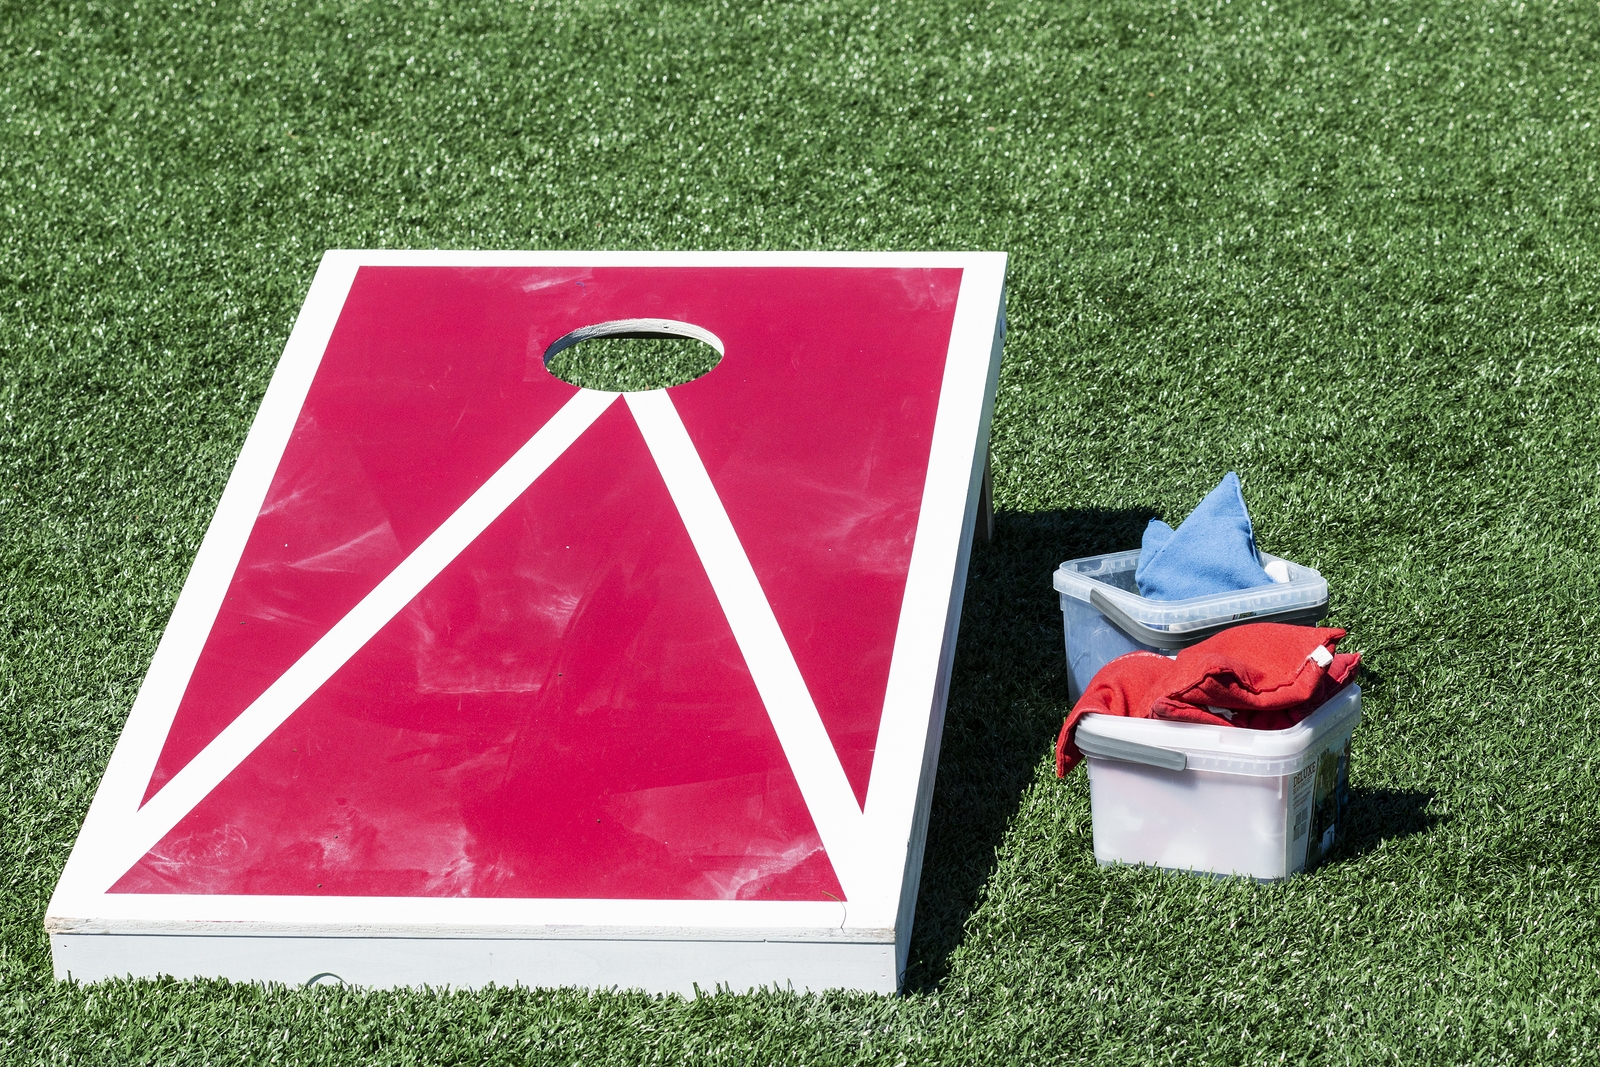 bigstock-Red-Corn-Hole-Game-With-White-308215237